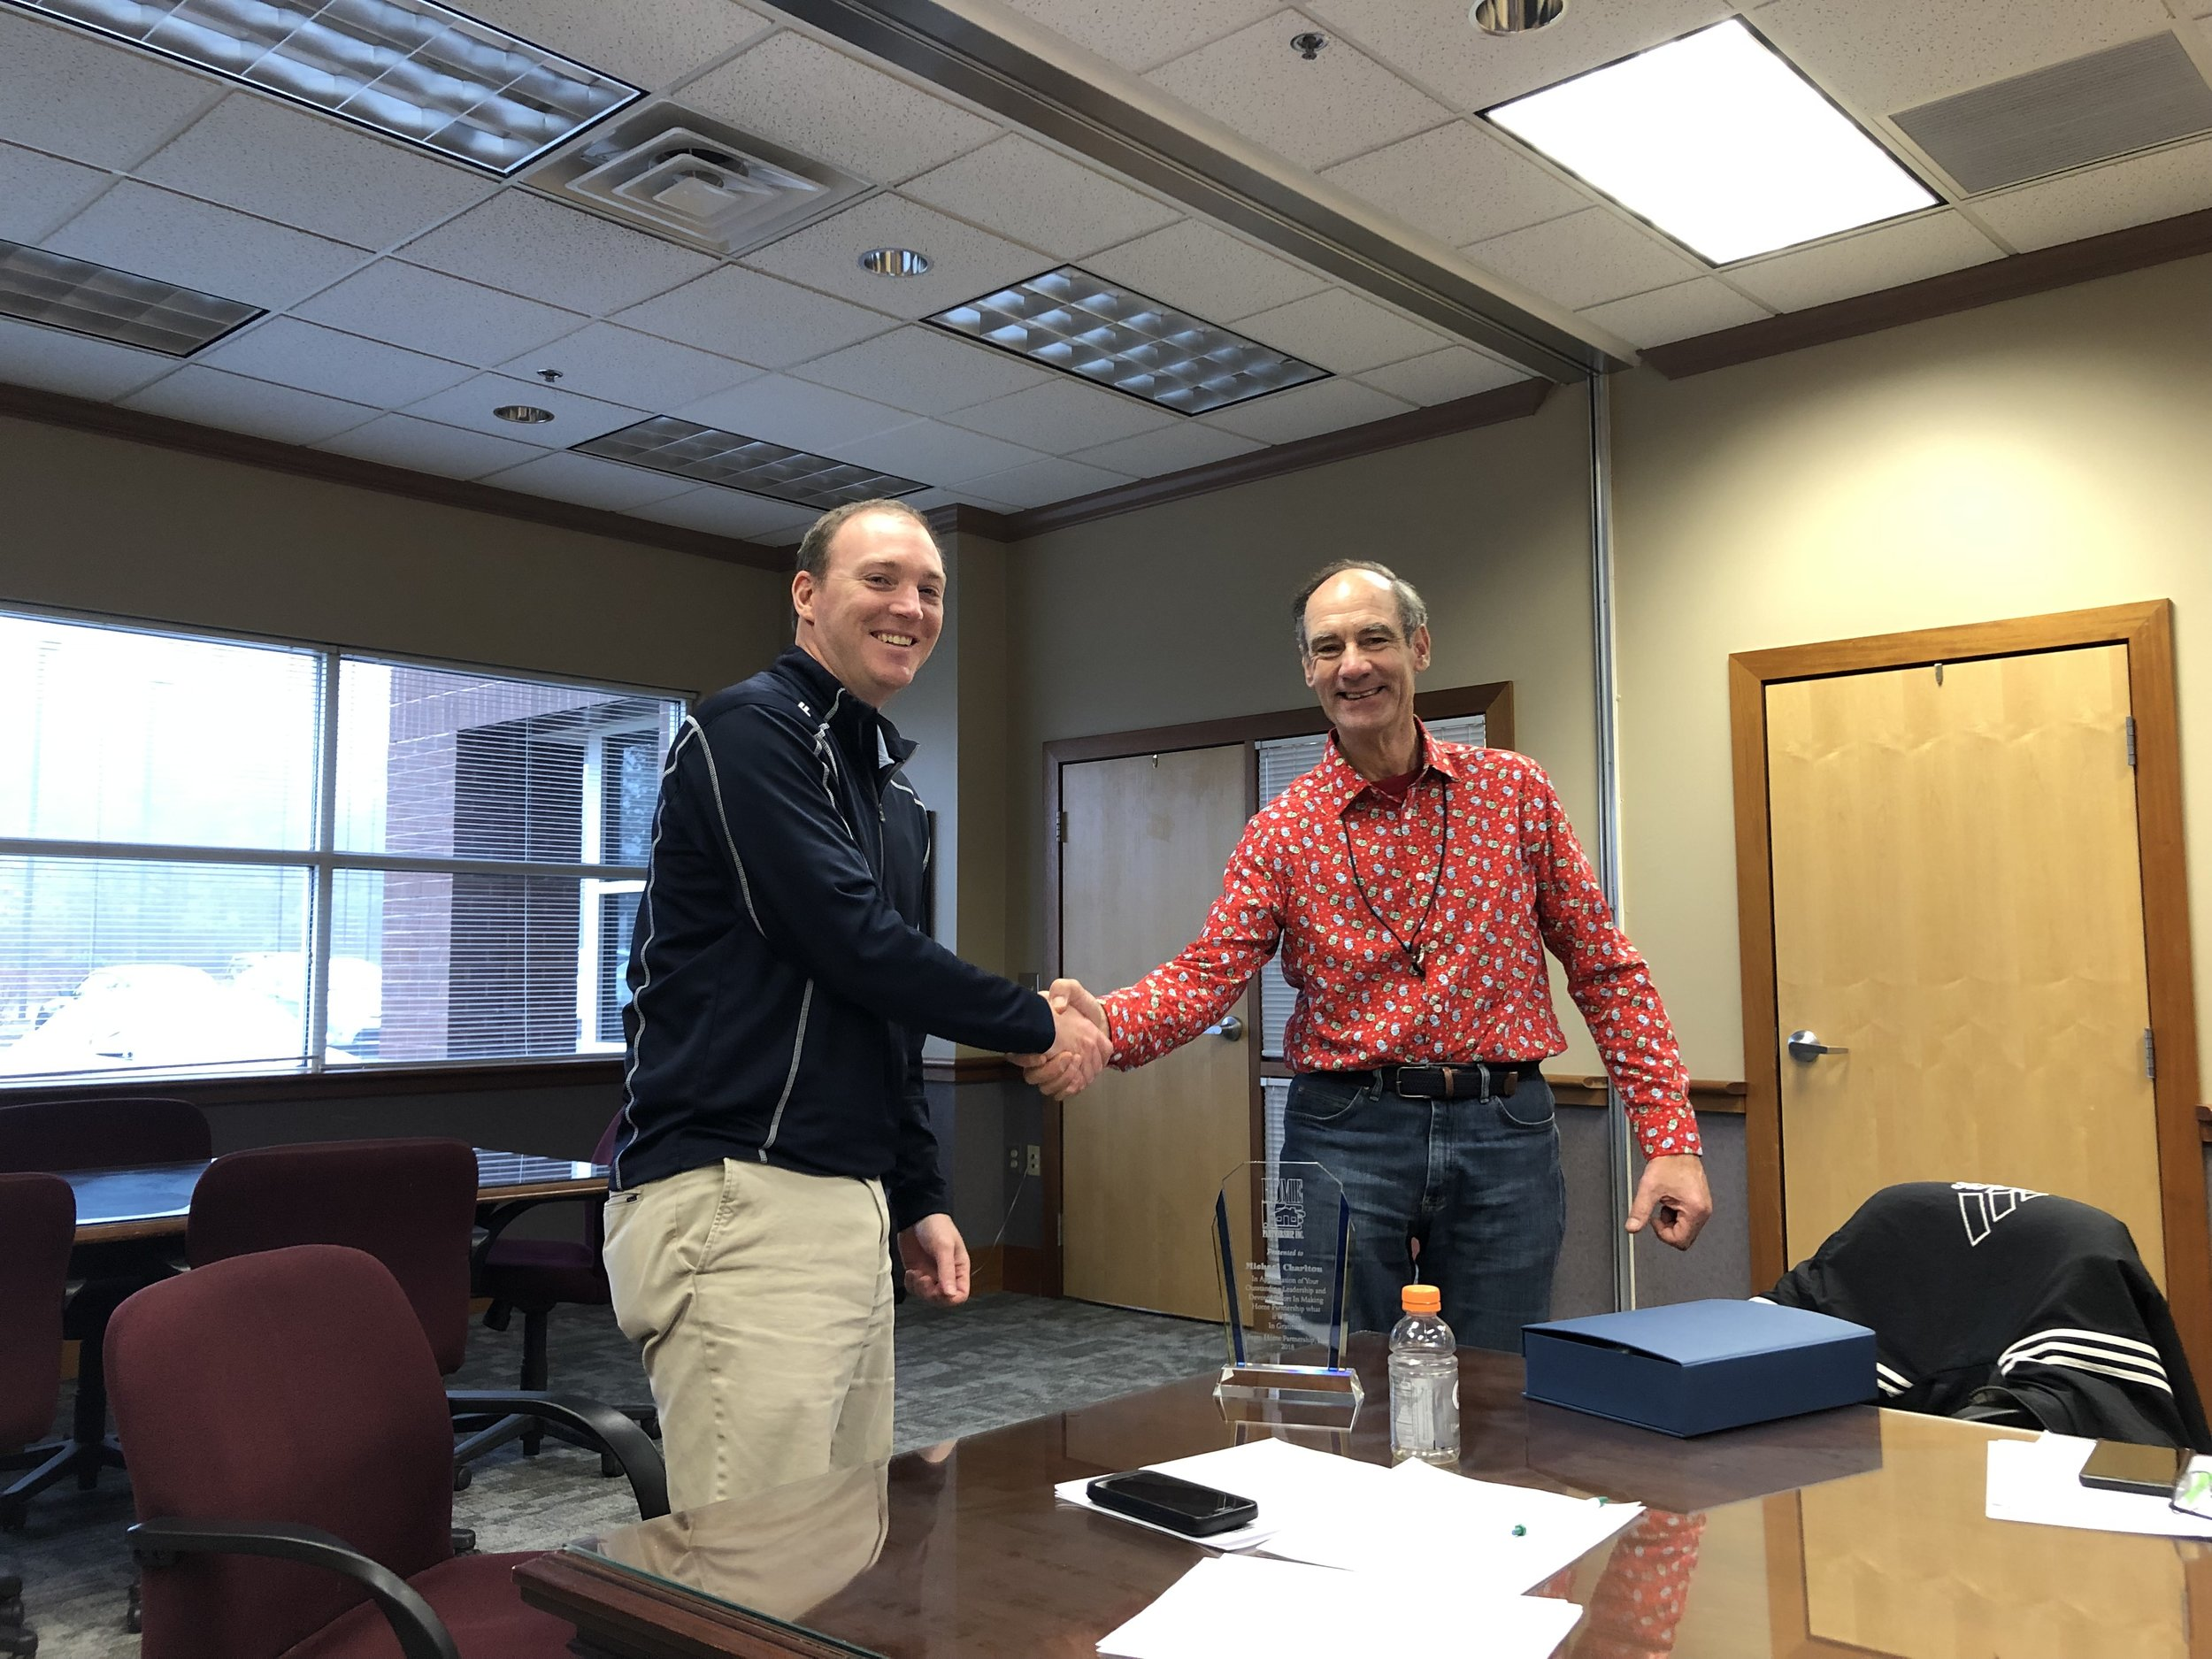 With Much Appreciation - Chair Dave Stromberg (right) presents Michael Charlton (left) with the Distinguished Board Member Award for his outstanding service to Home Partnership as a board member and officer of the organization.Dec 2018